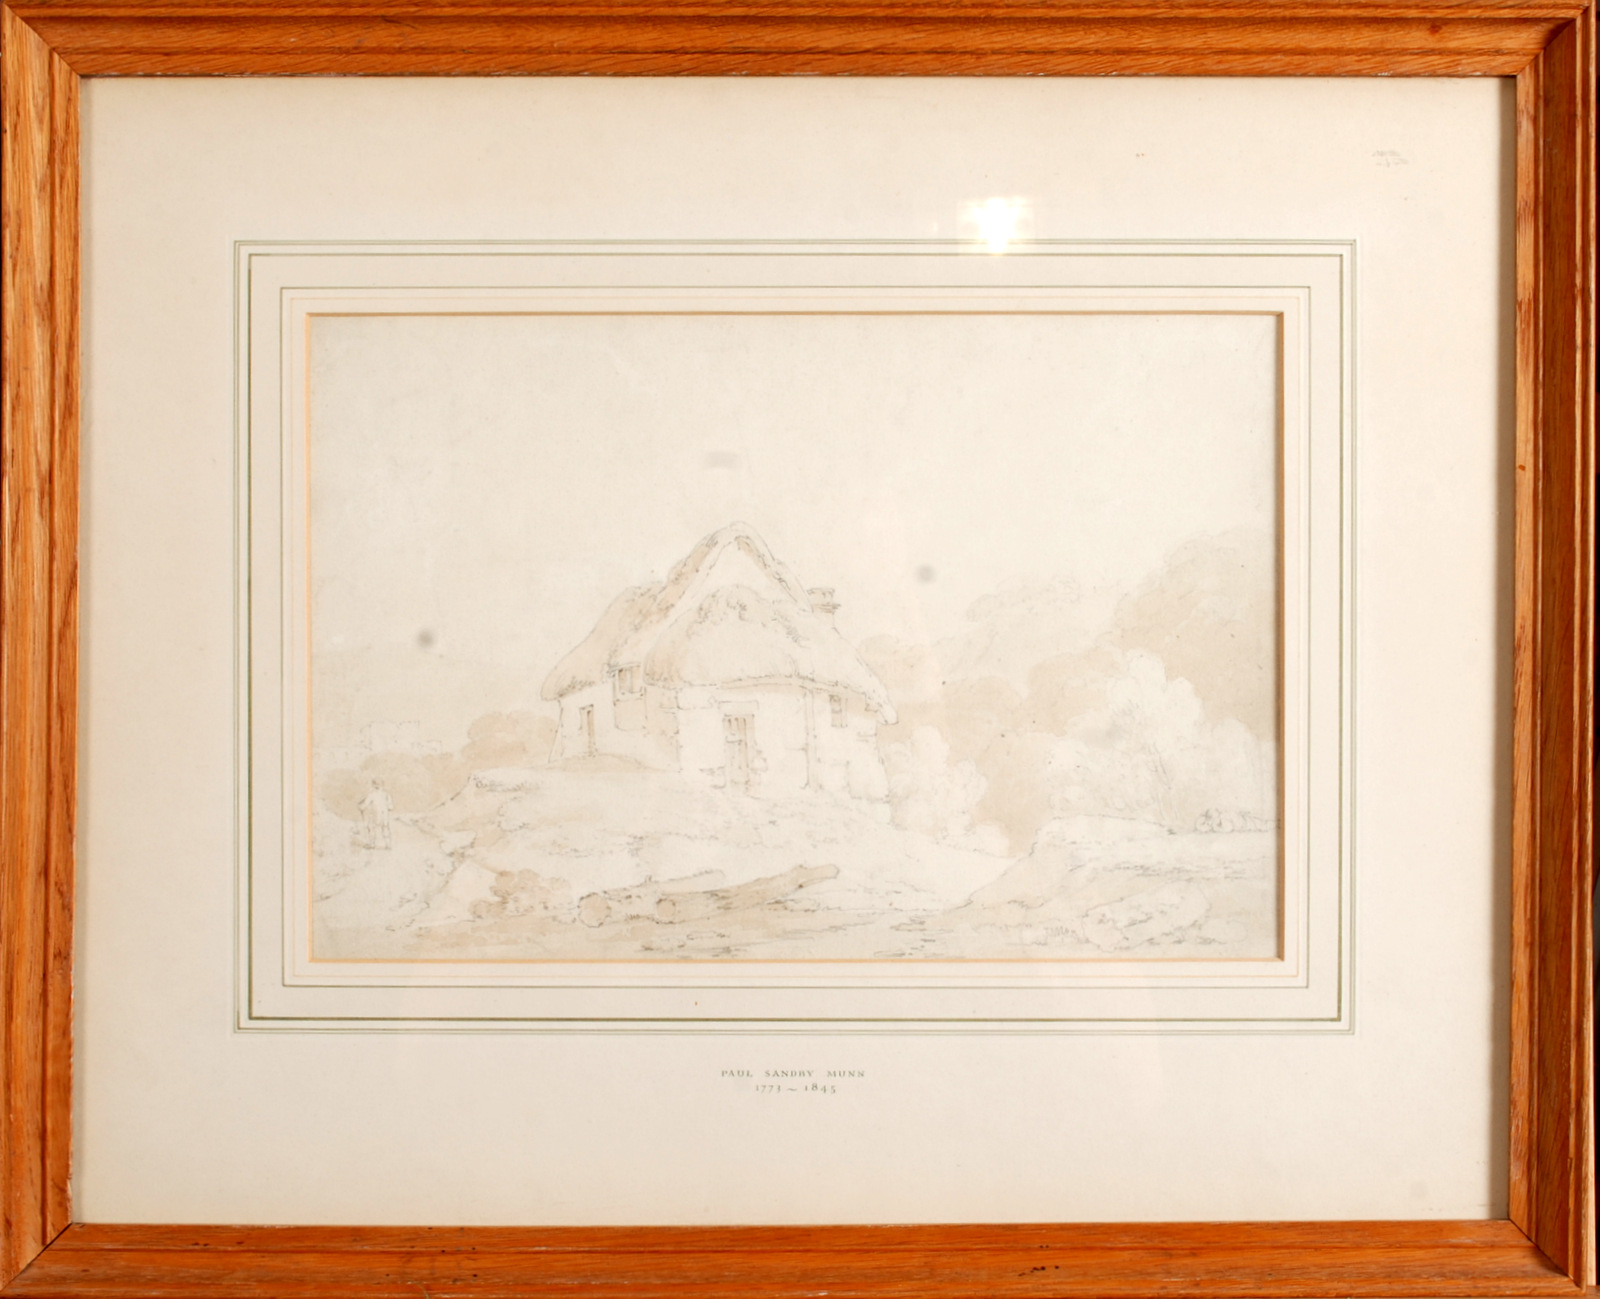 Lot 59 - PAUL SANDBY MUNN A Country Cottage Pen and wash Inscribed in the mount 21 x 31 cm